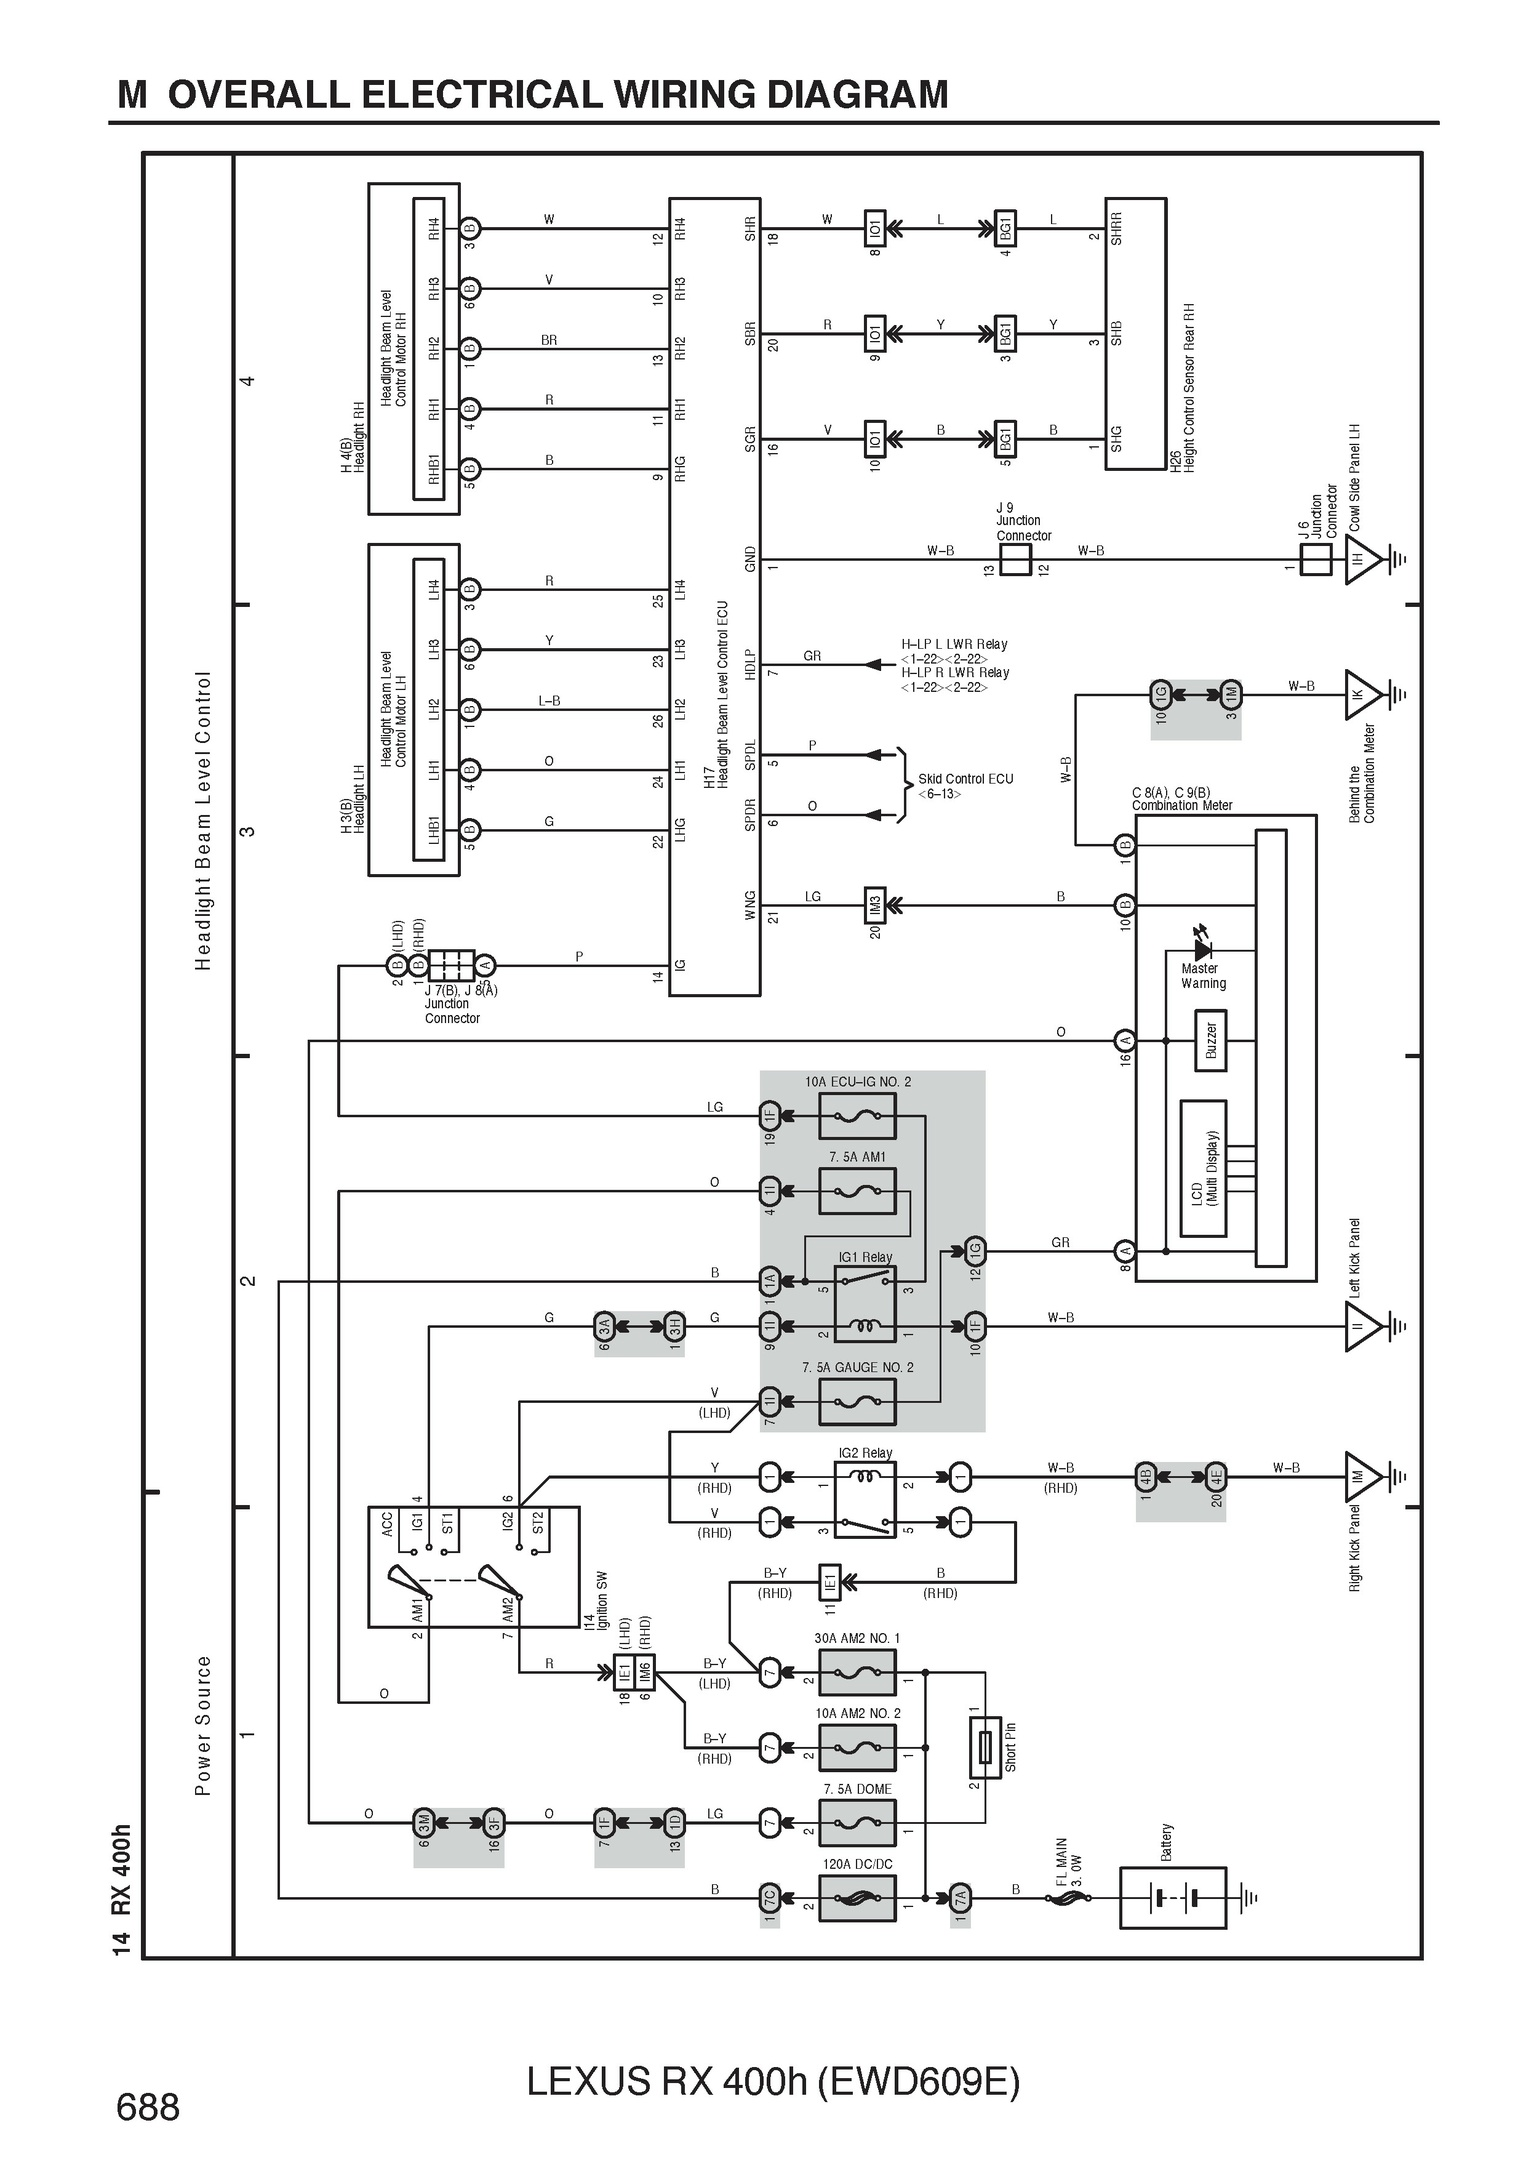 Free 2005 Lexus Rx400h Oem Electrical Wiring Diagram Pdf Language English File Type